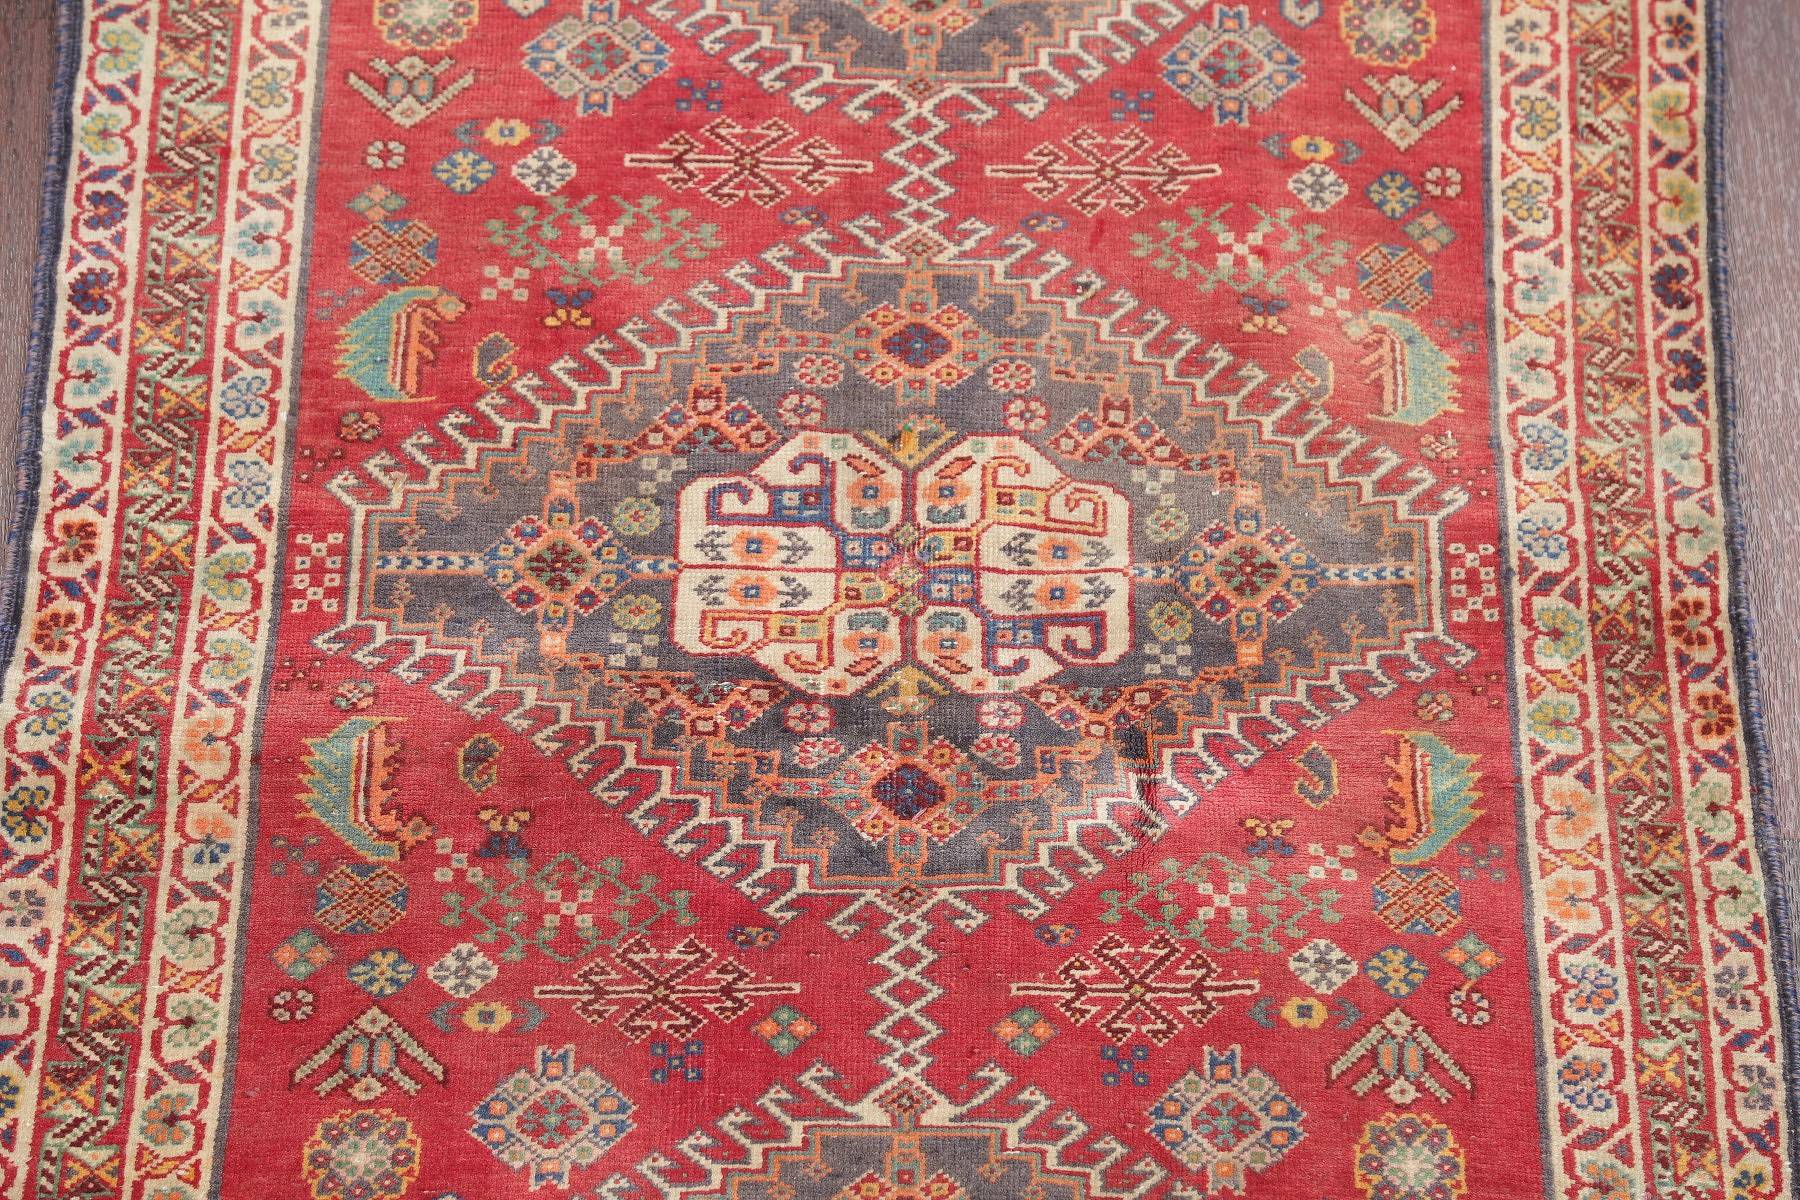 Antique Red Tribal Kashkoli Persian Hand-Knotted 3x5 Wool Rug